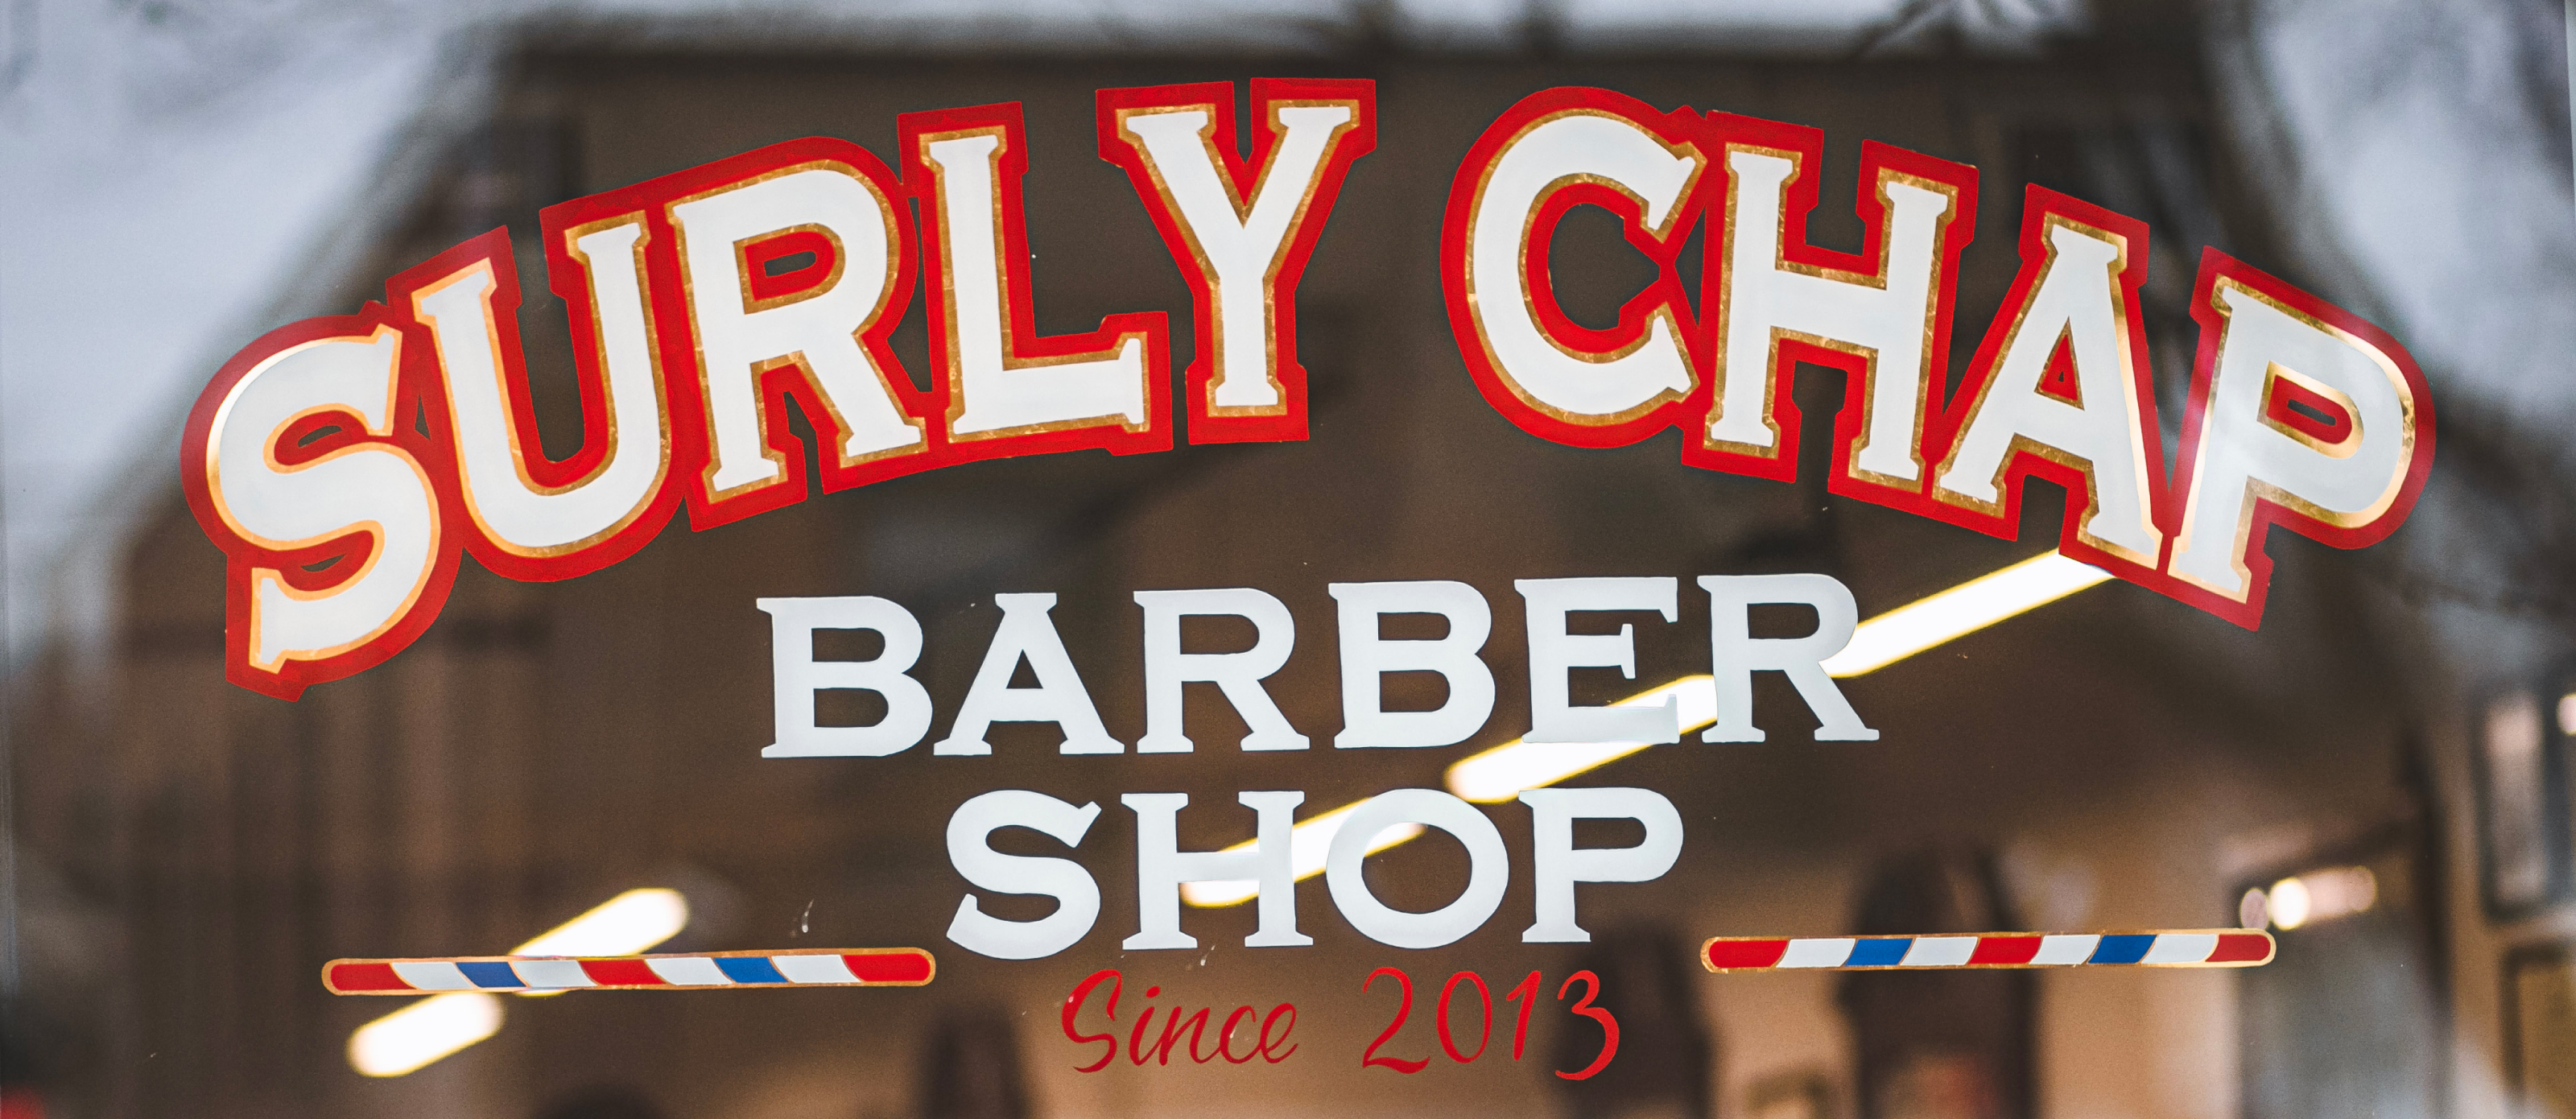 Photo of the Surly Chap window sign